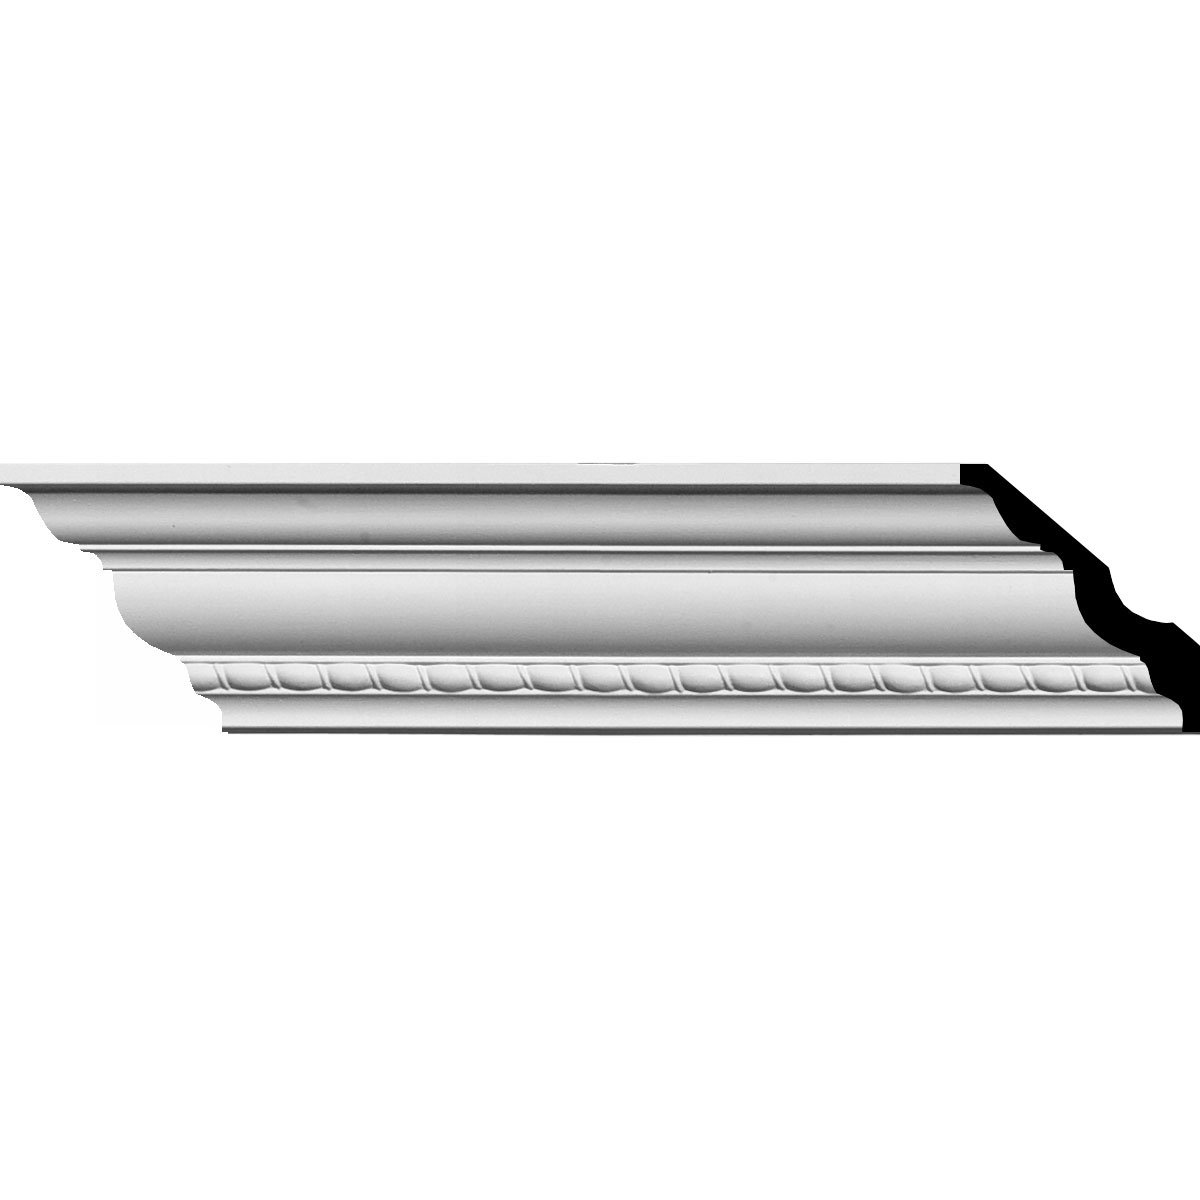 Ekena Millwork MLD02X02X04CR-CASE-12 3'' H x 3'' P x 4-1/4'' F x 94-1/2'' L Crendon Bead and Barrel Crown Molding (12-Pack)